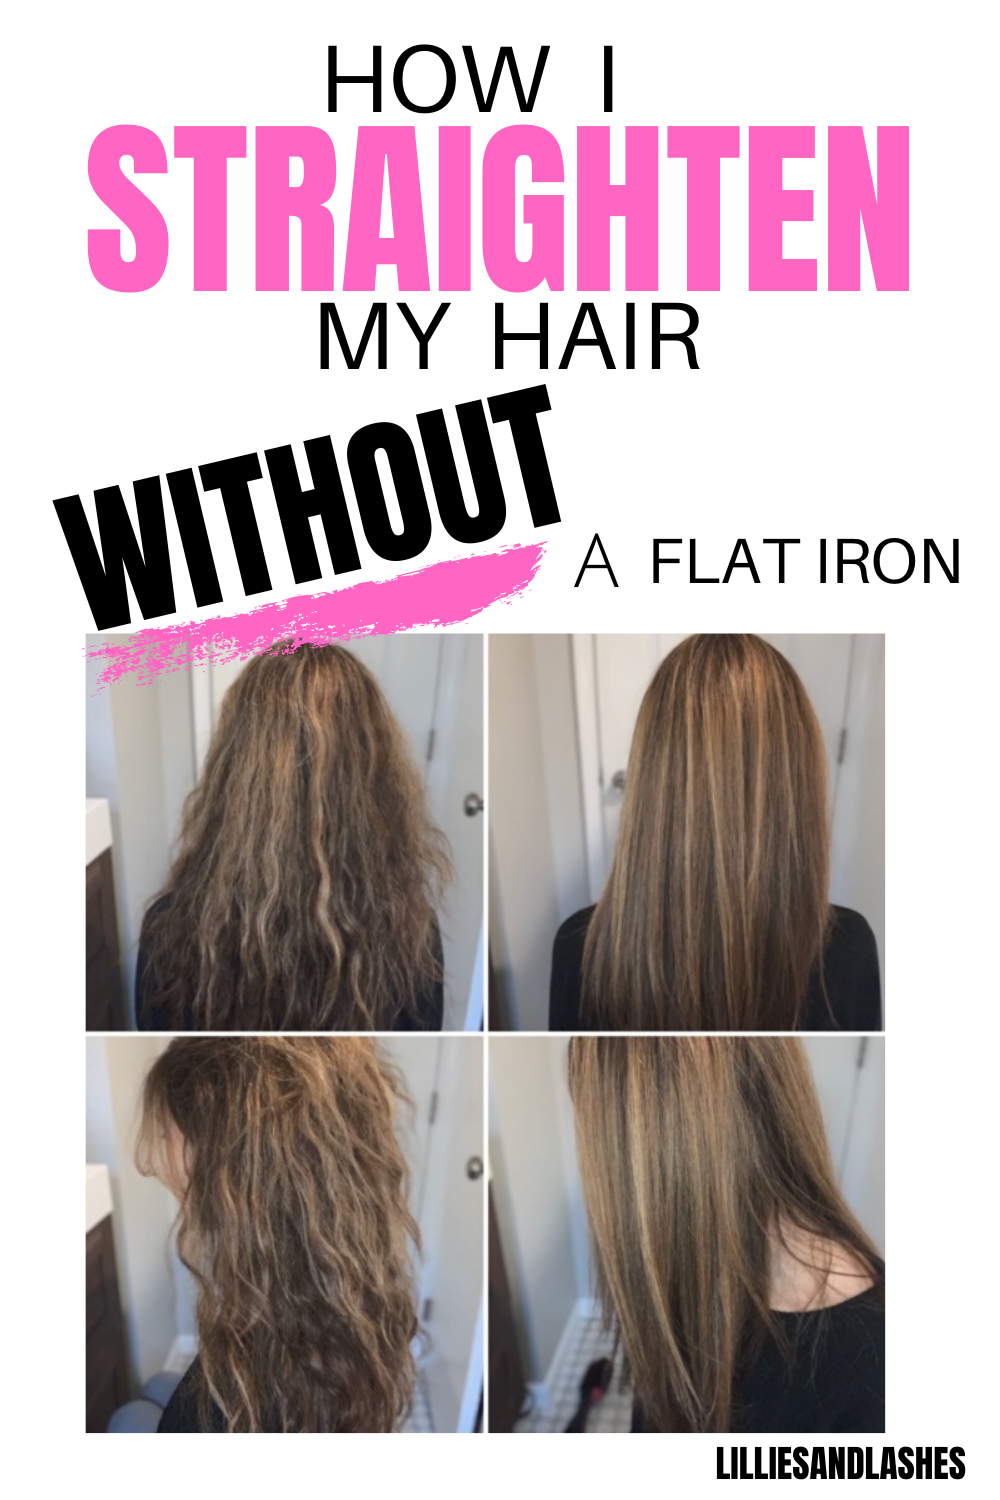 How To Straighten Hair Quickly Without A Flat Iron Lillies And Lashes In 2020 Straightening Hair Tips Straightening Curly Hair Flat Iron Hair Styles